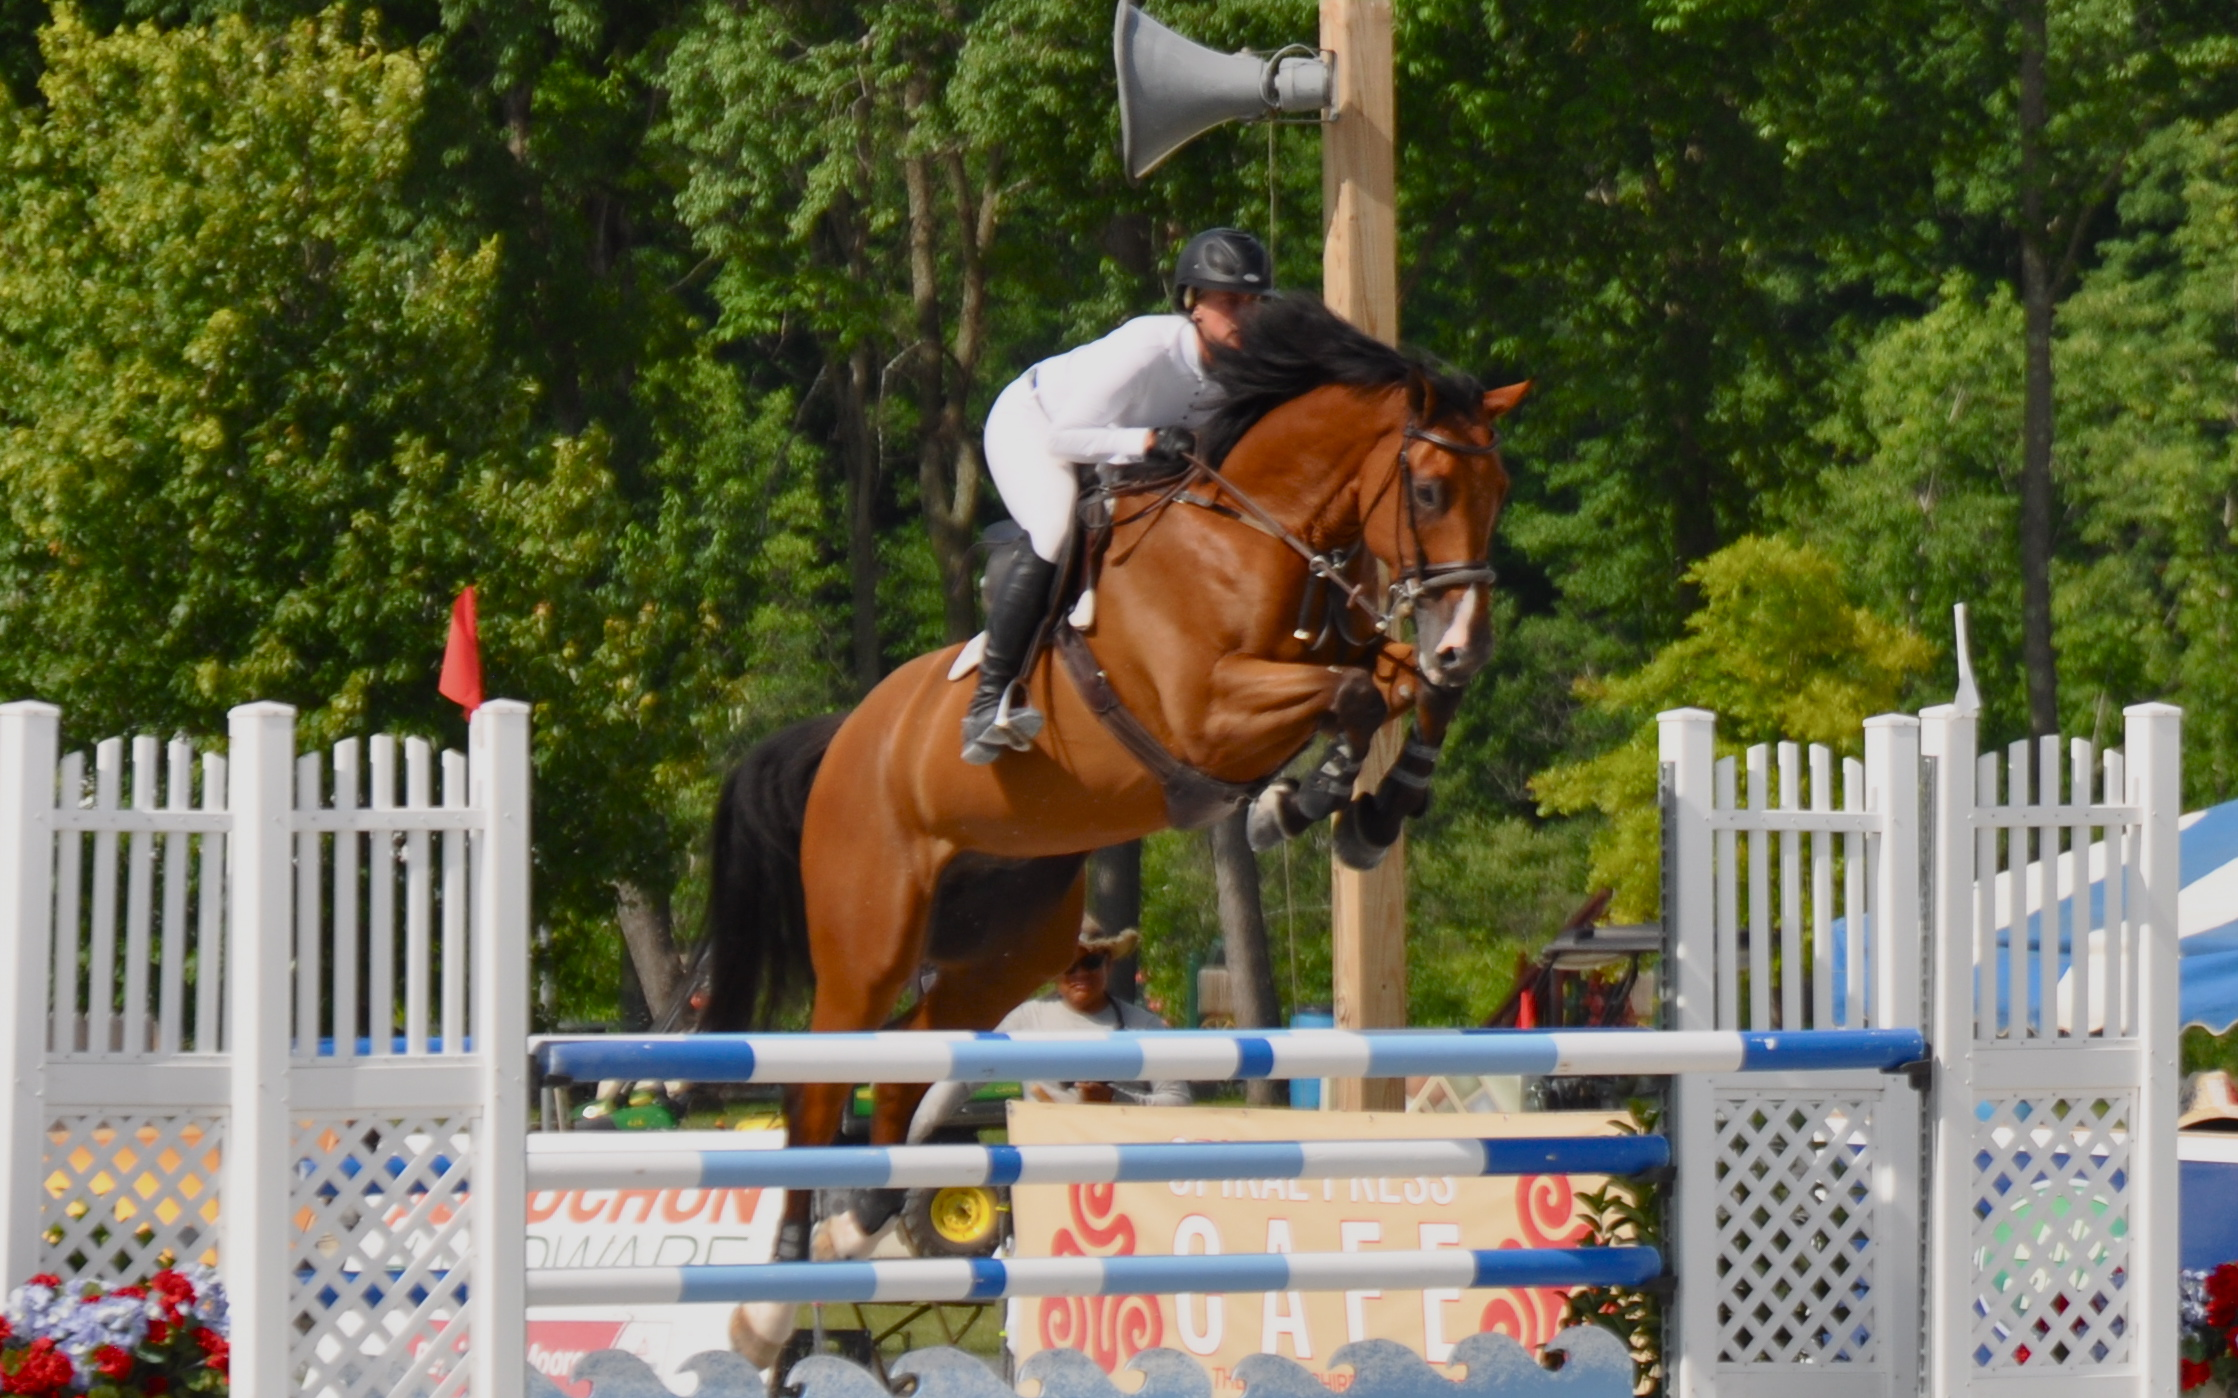 VDL Excel: 2009 Douglas x Quick Star KWPN gelding Grand Prix potential. Currently competing in 1.40 and 7 year old Jumpers.